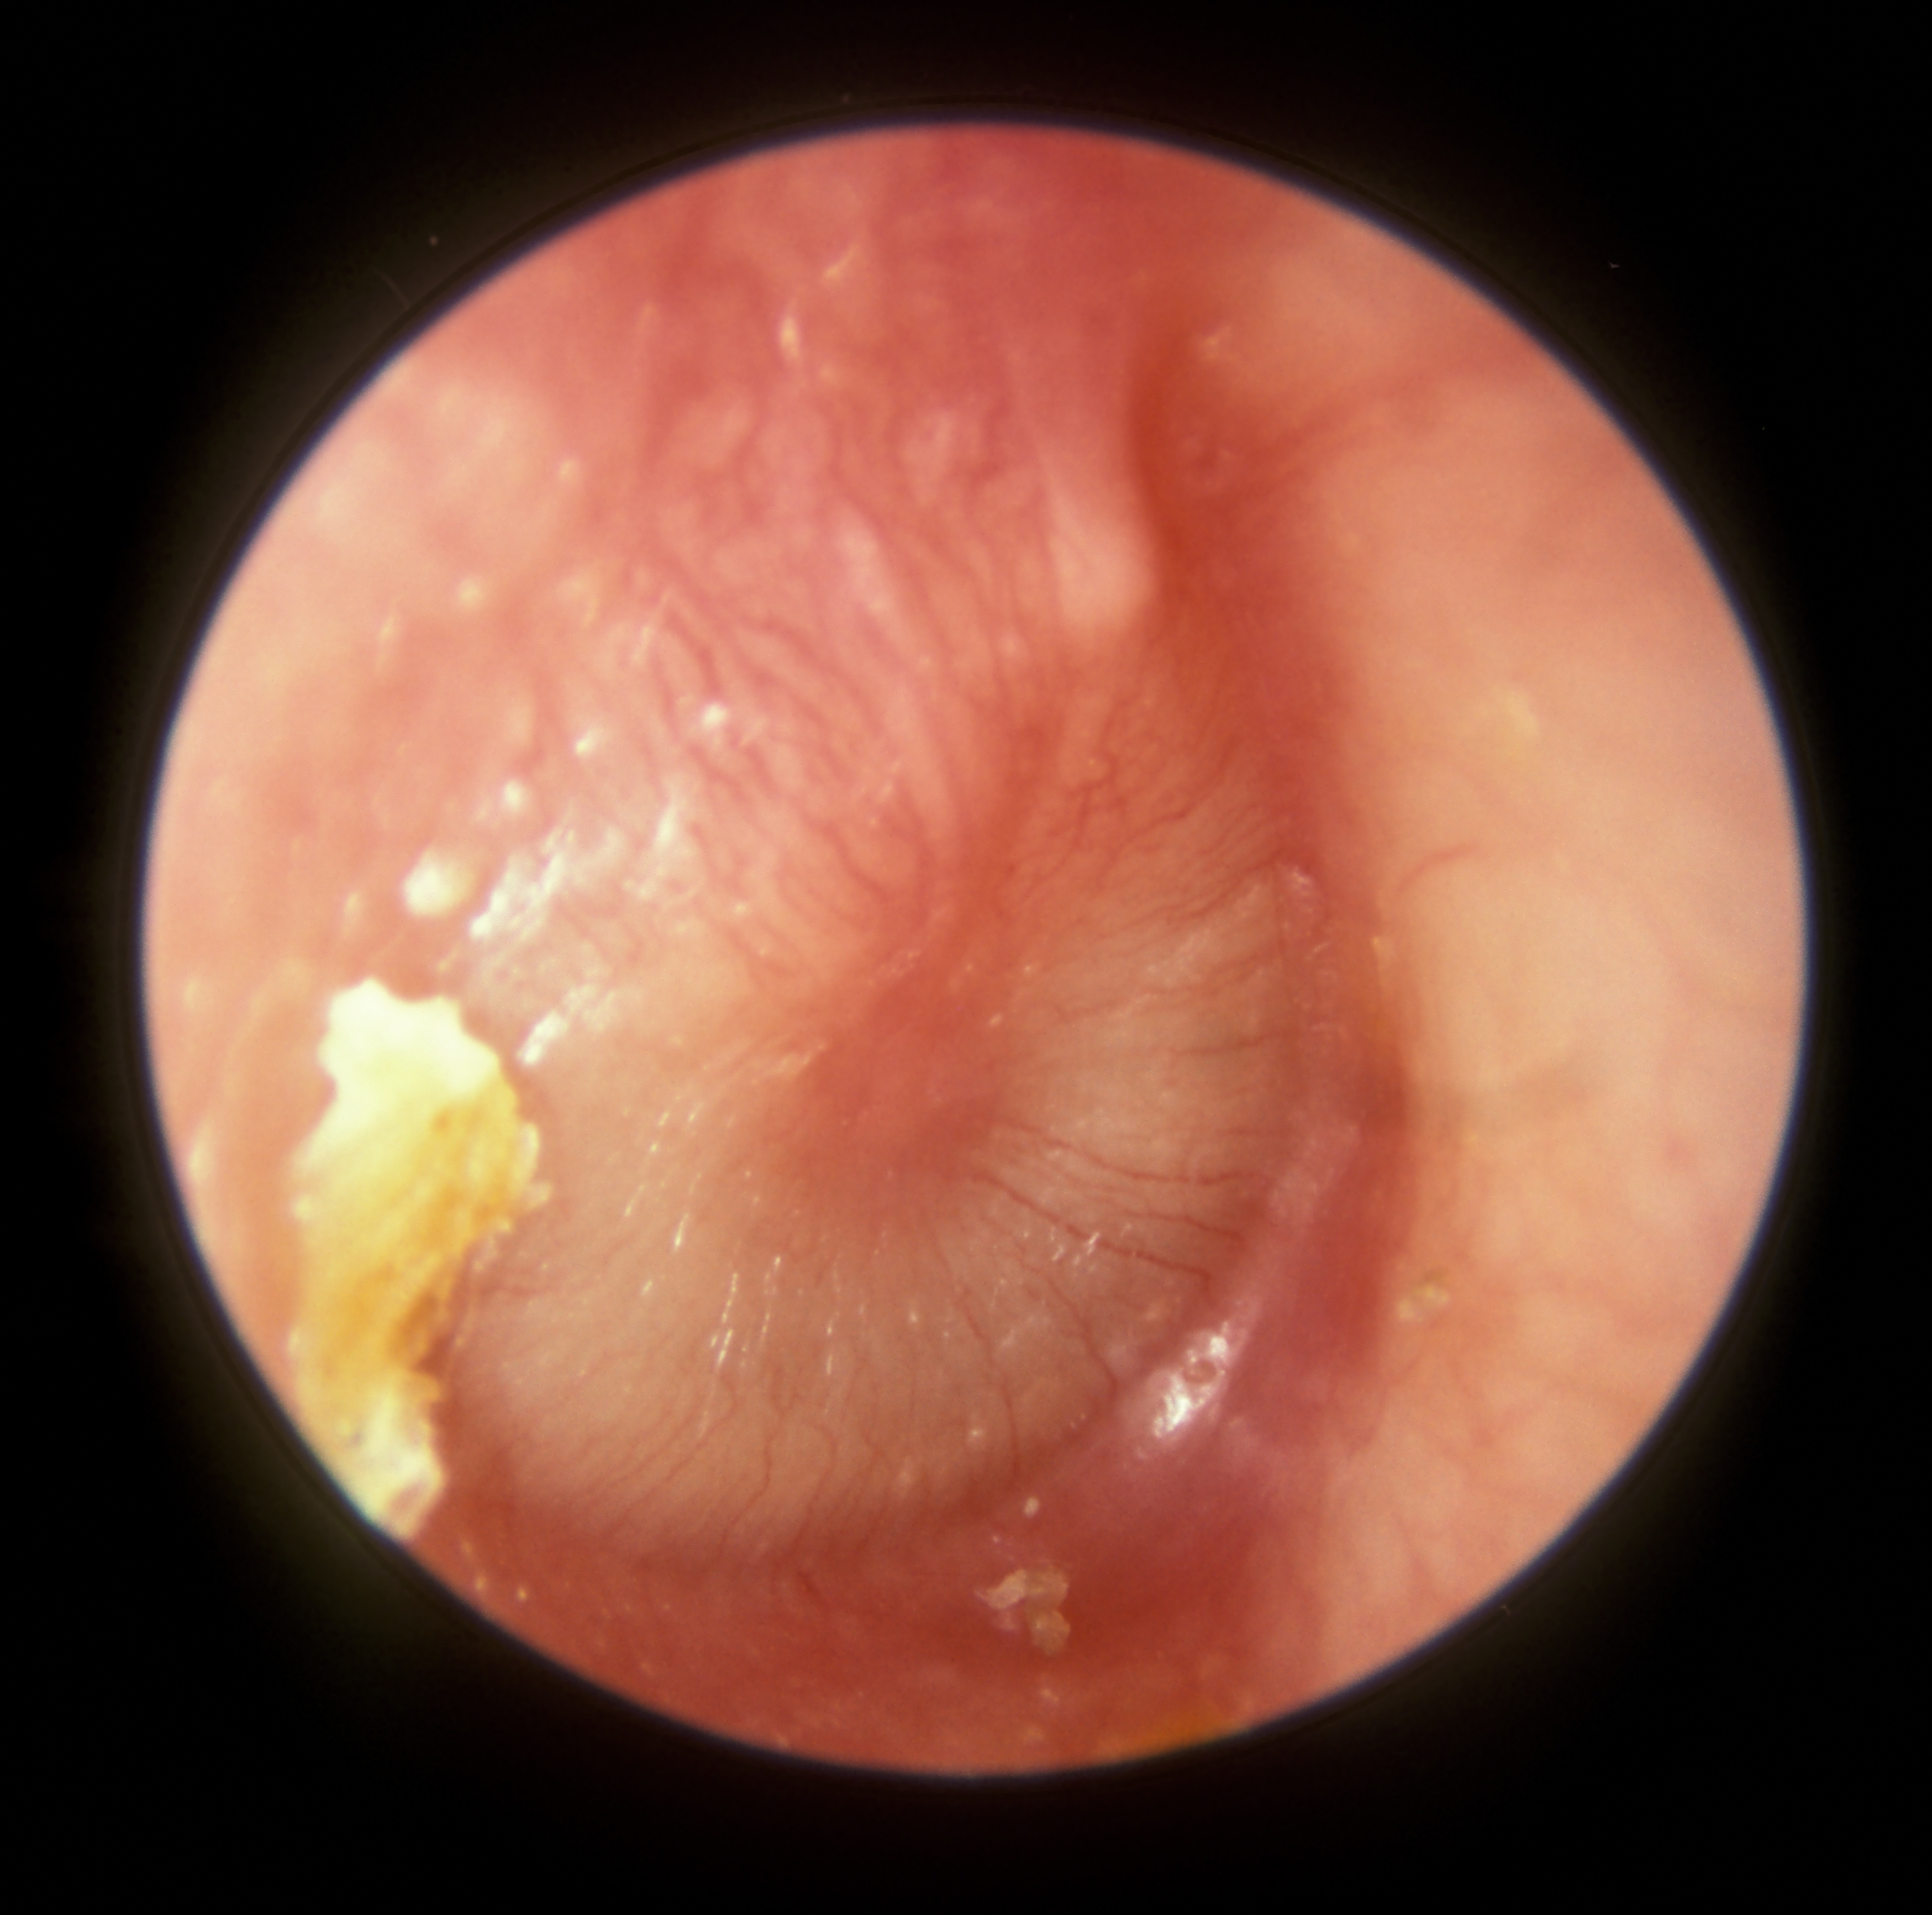 acute otitis media in adult